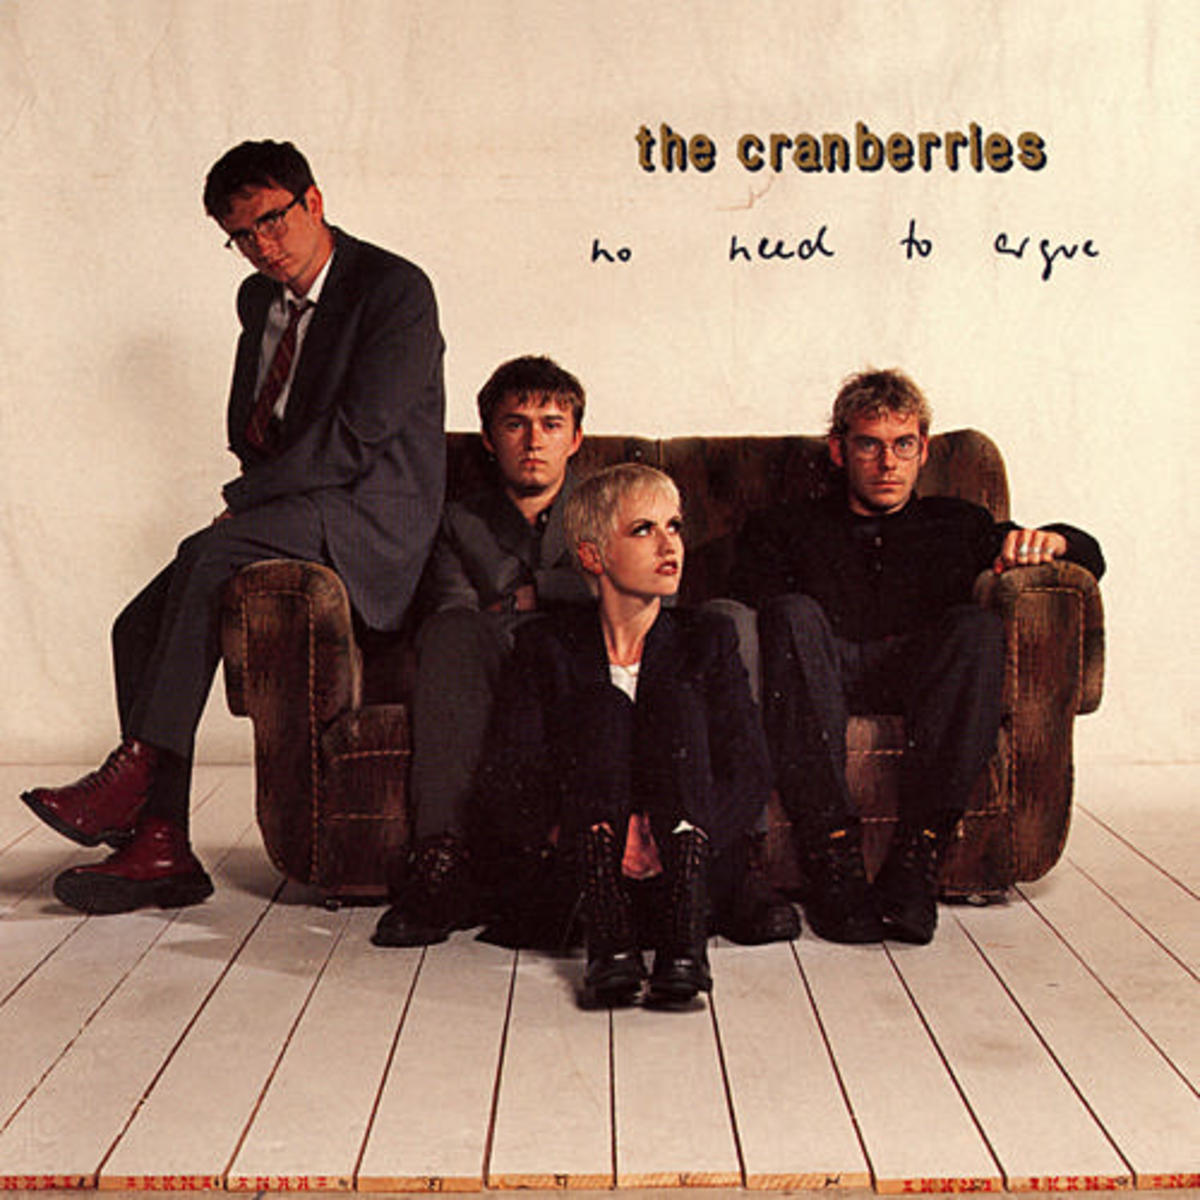 Zombie The Cranberries - From the original album No Need To Argue